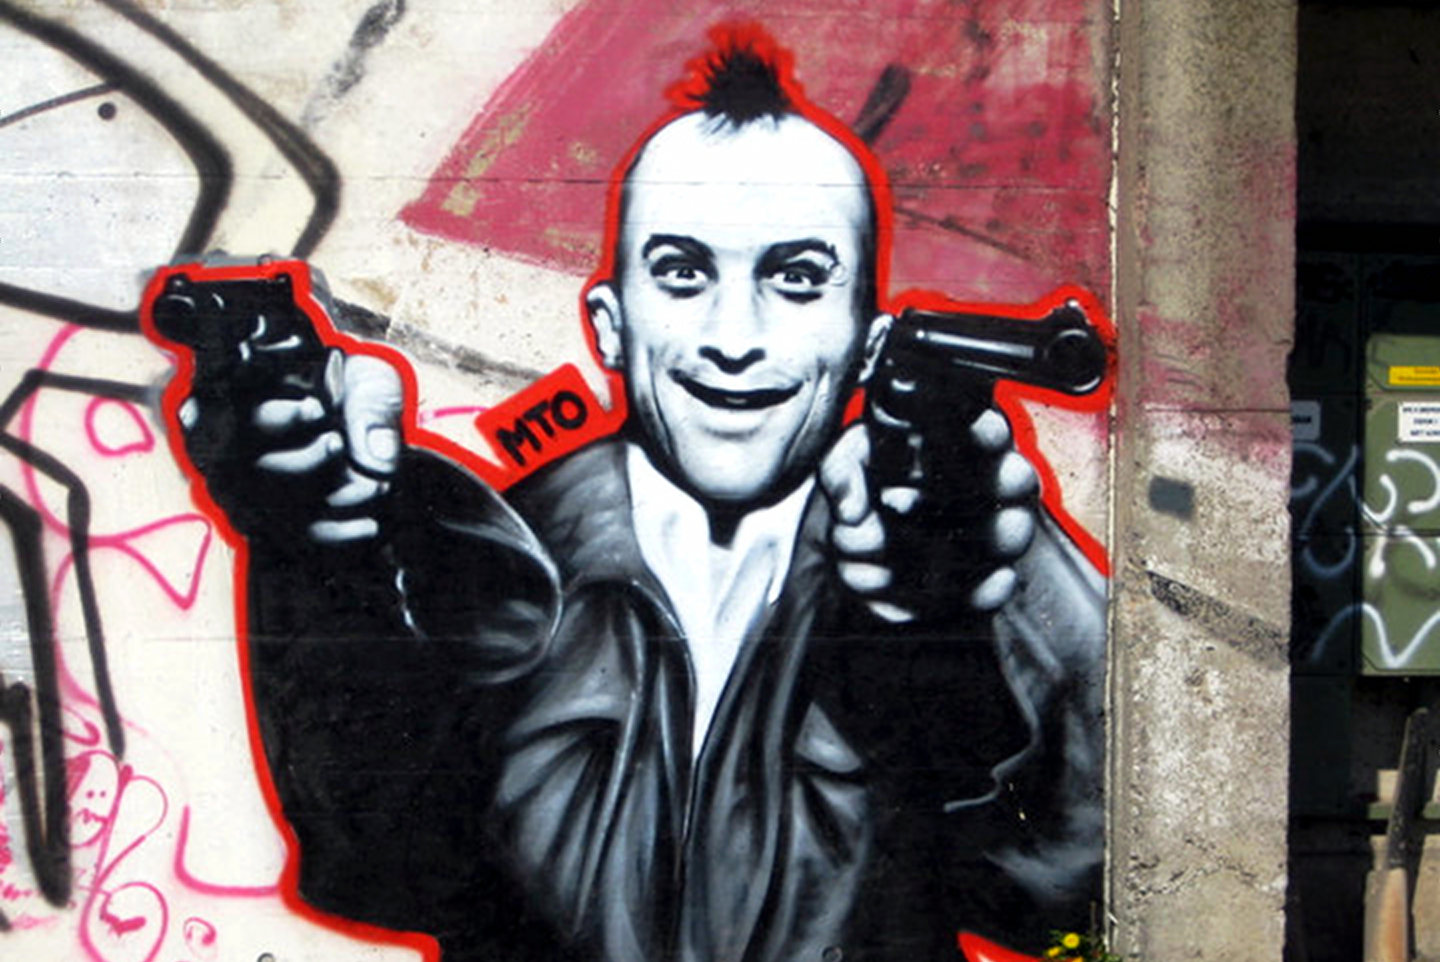 Robert Deniro, taxi driver made by Belin based Street Artist MTO